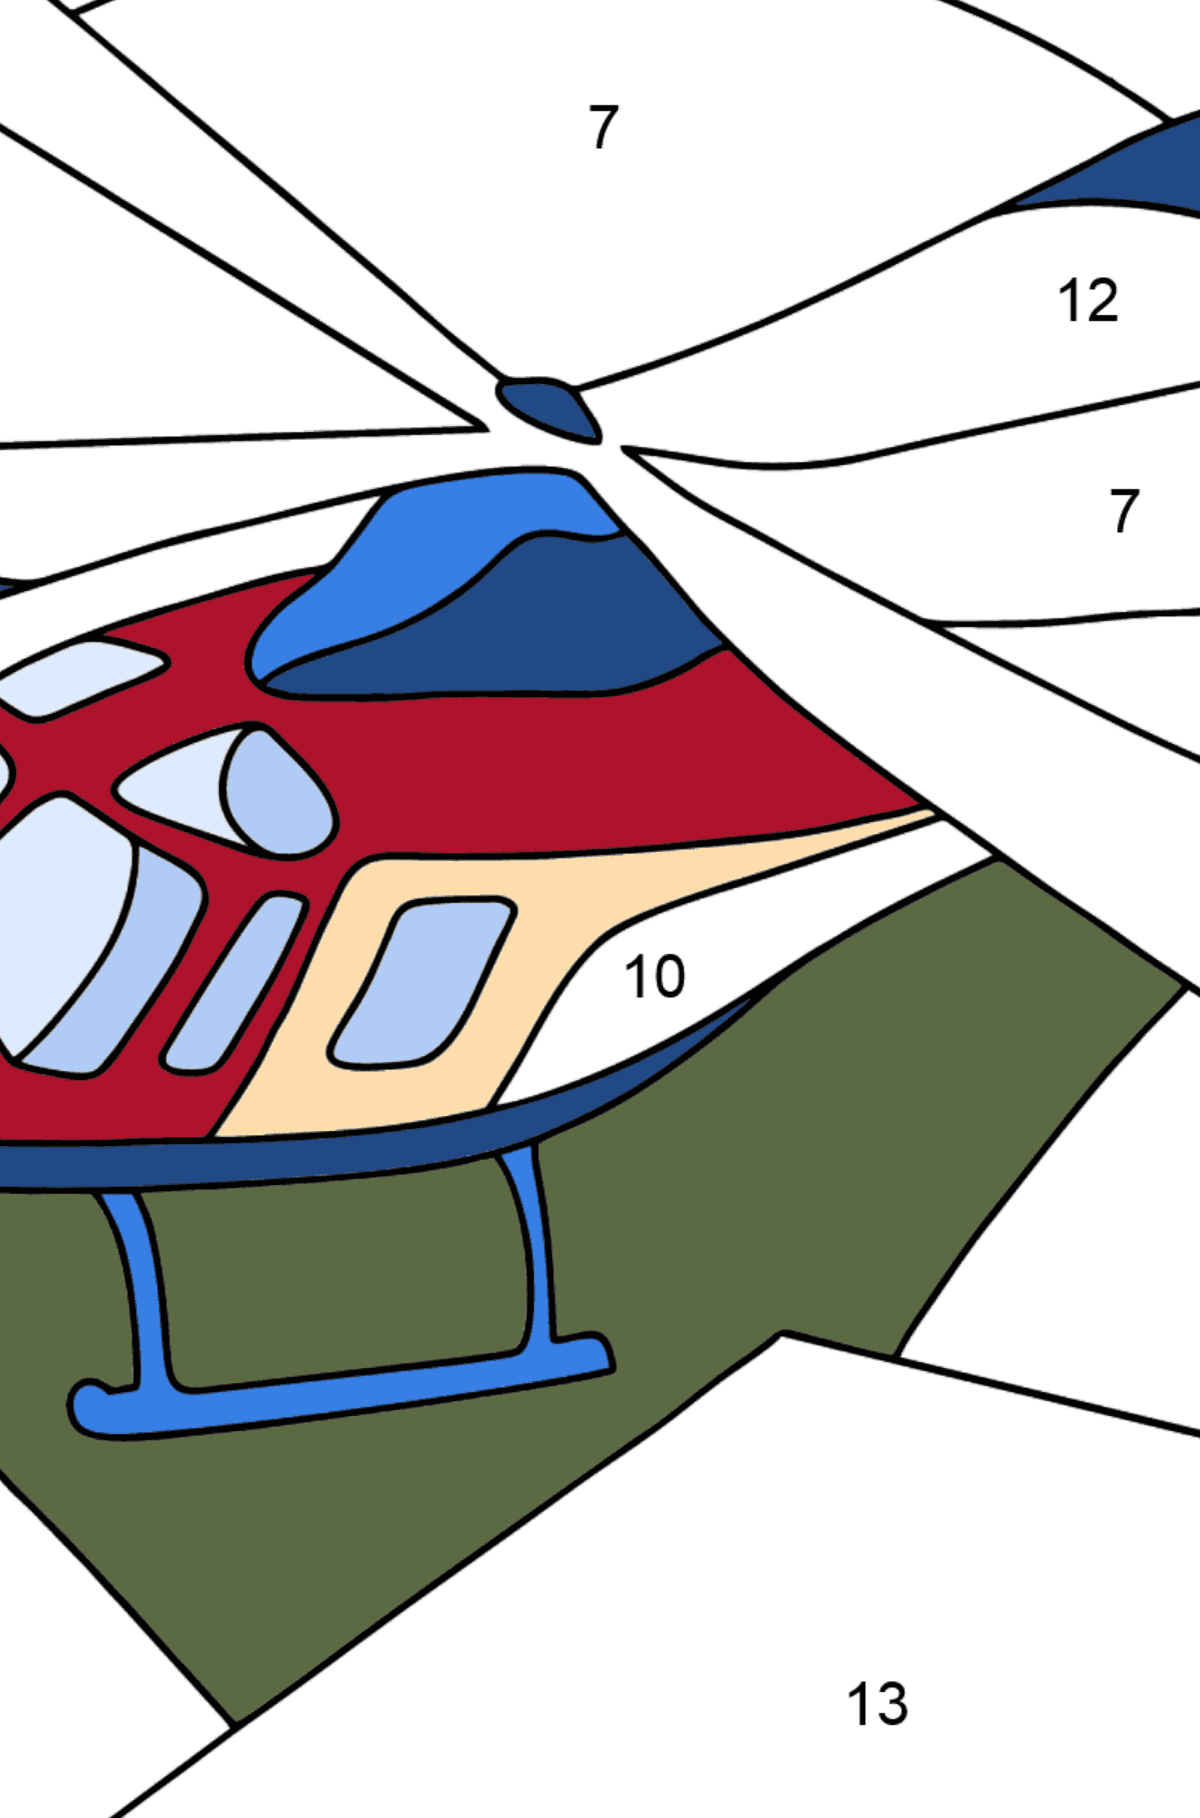 Coloring Page - A Sport Helicopter - Coloring by Numbers for Kids